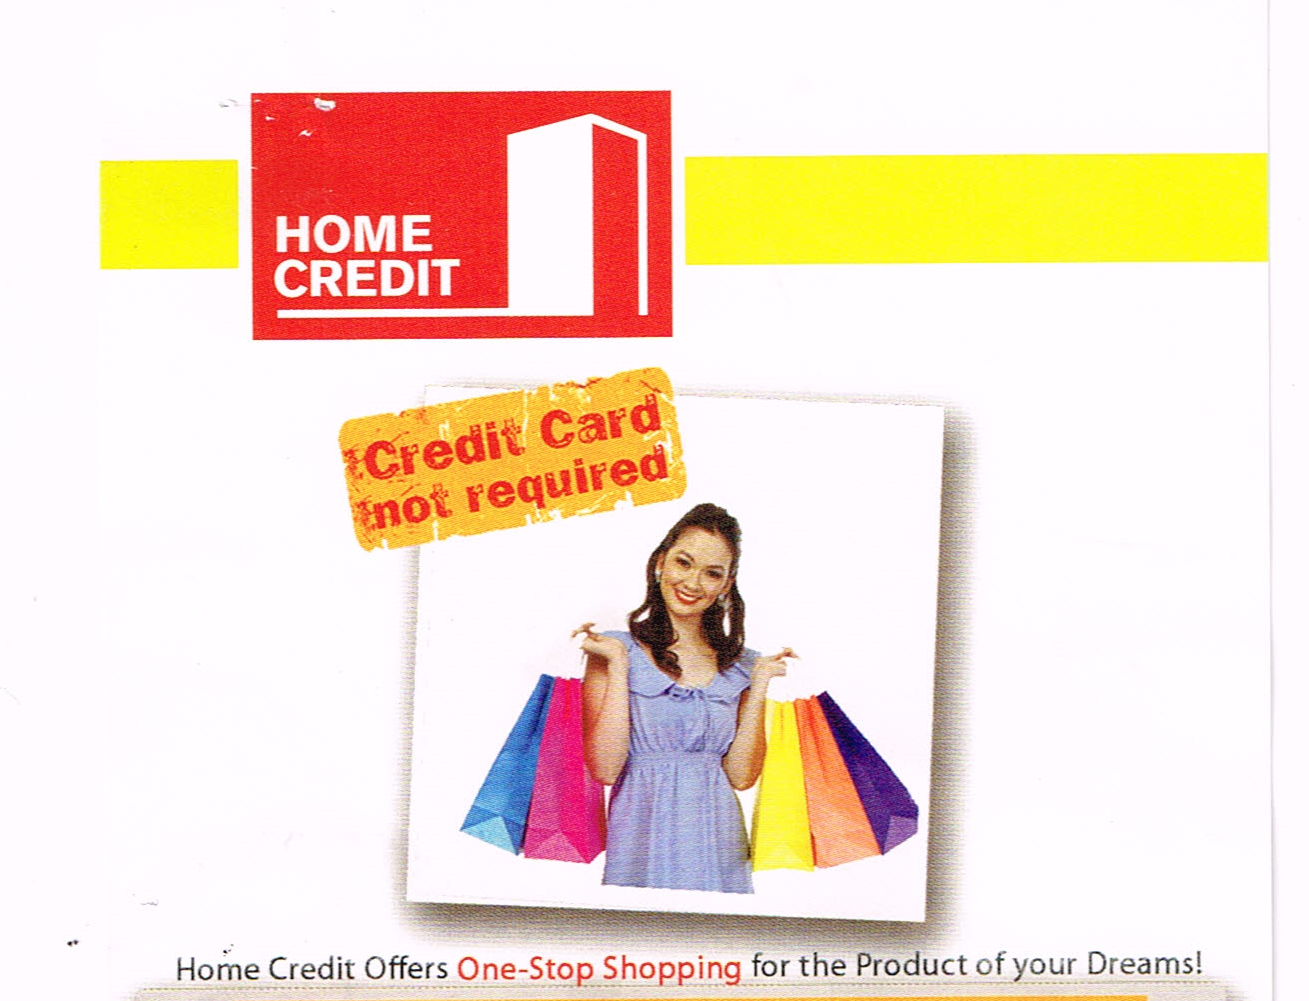 HOME CREDIT: CREDIT CARD NOT REQUIRED MAG-APPLY NA!